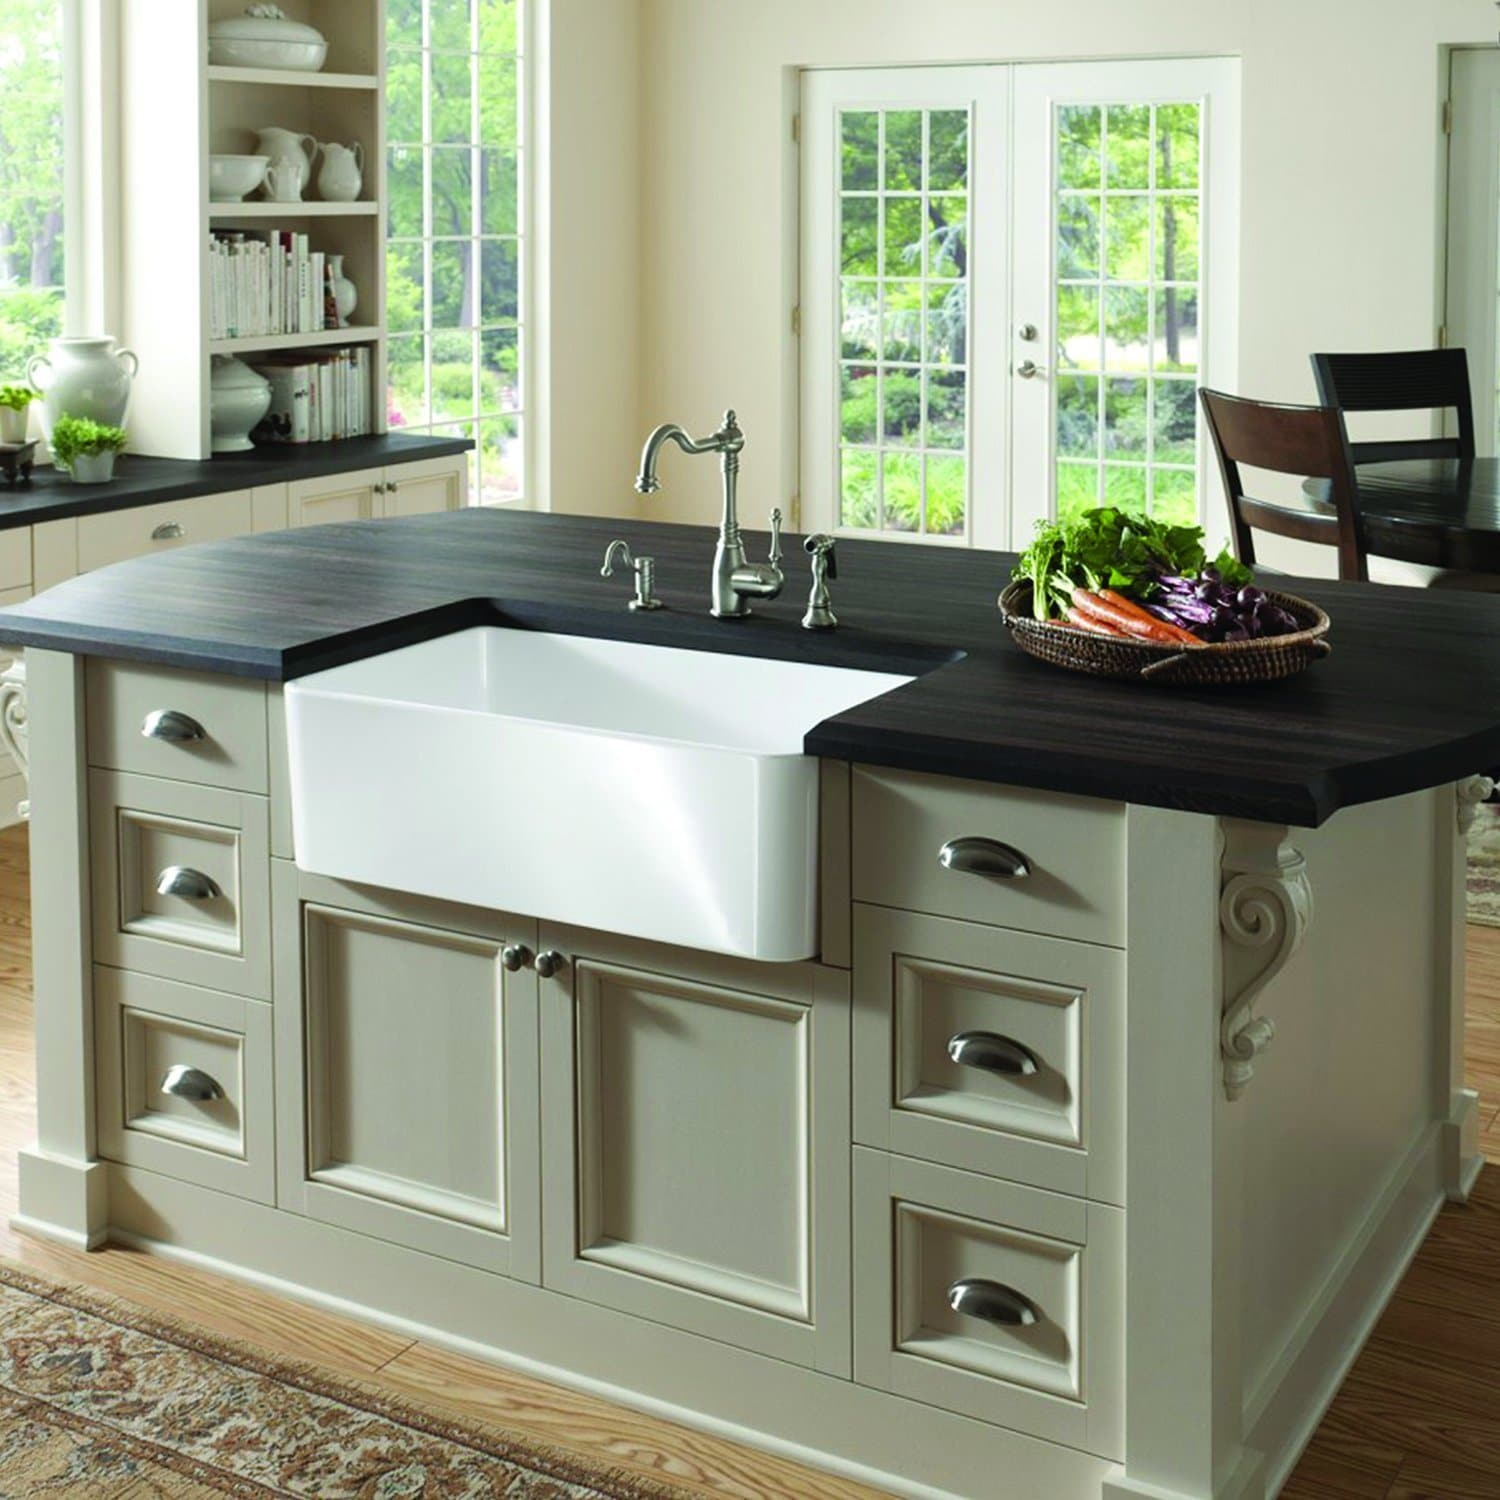 farmhouse sink_9